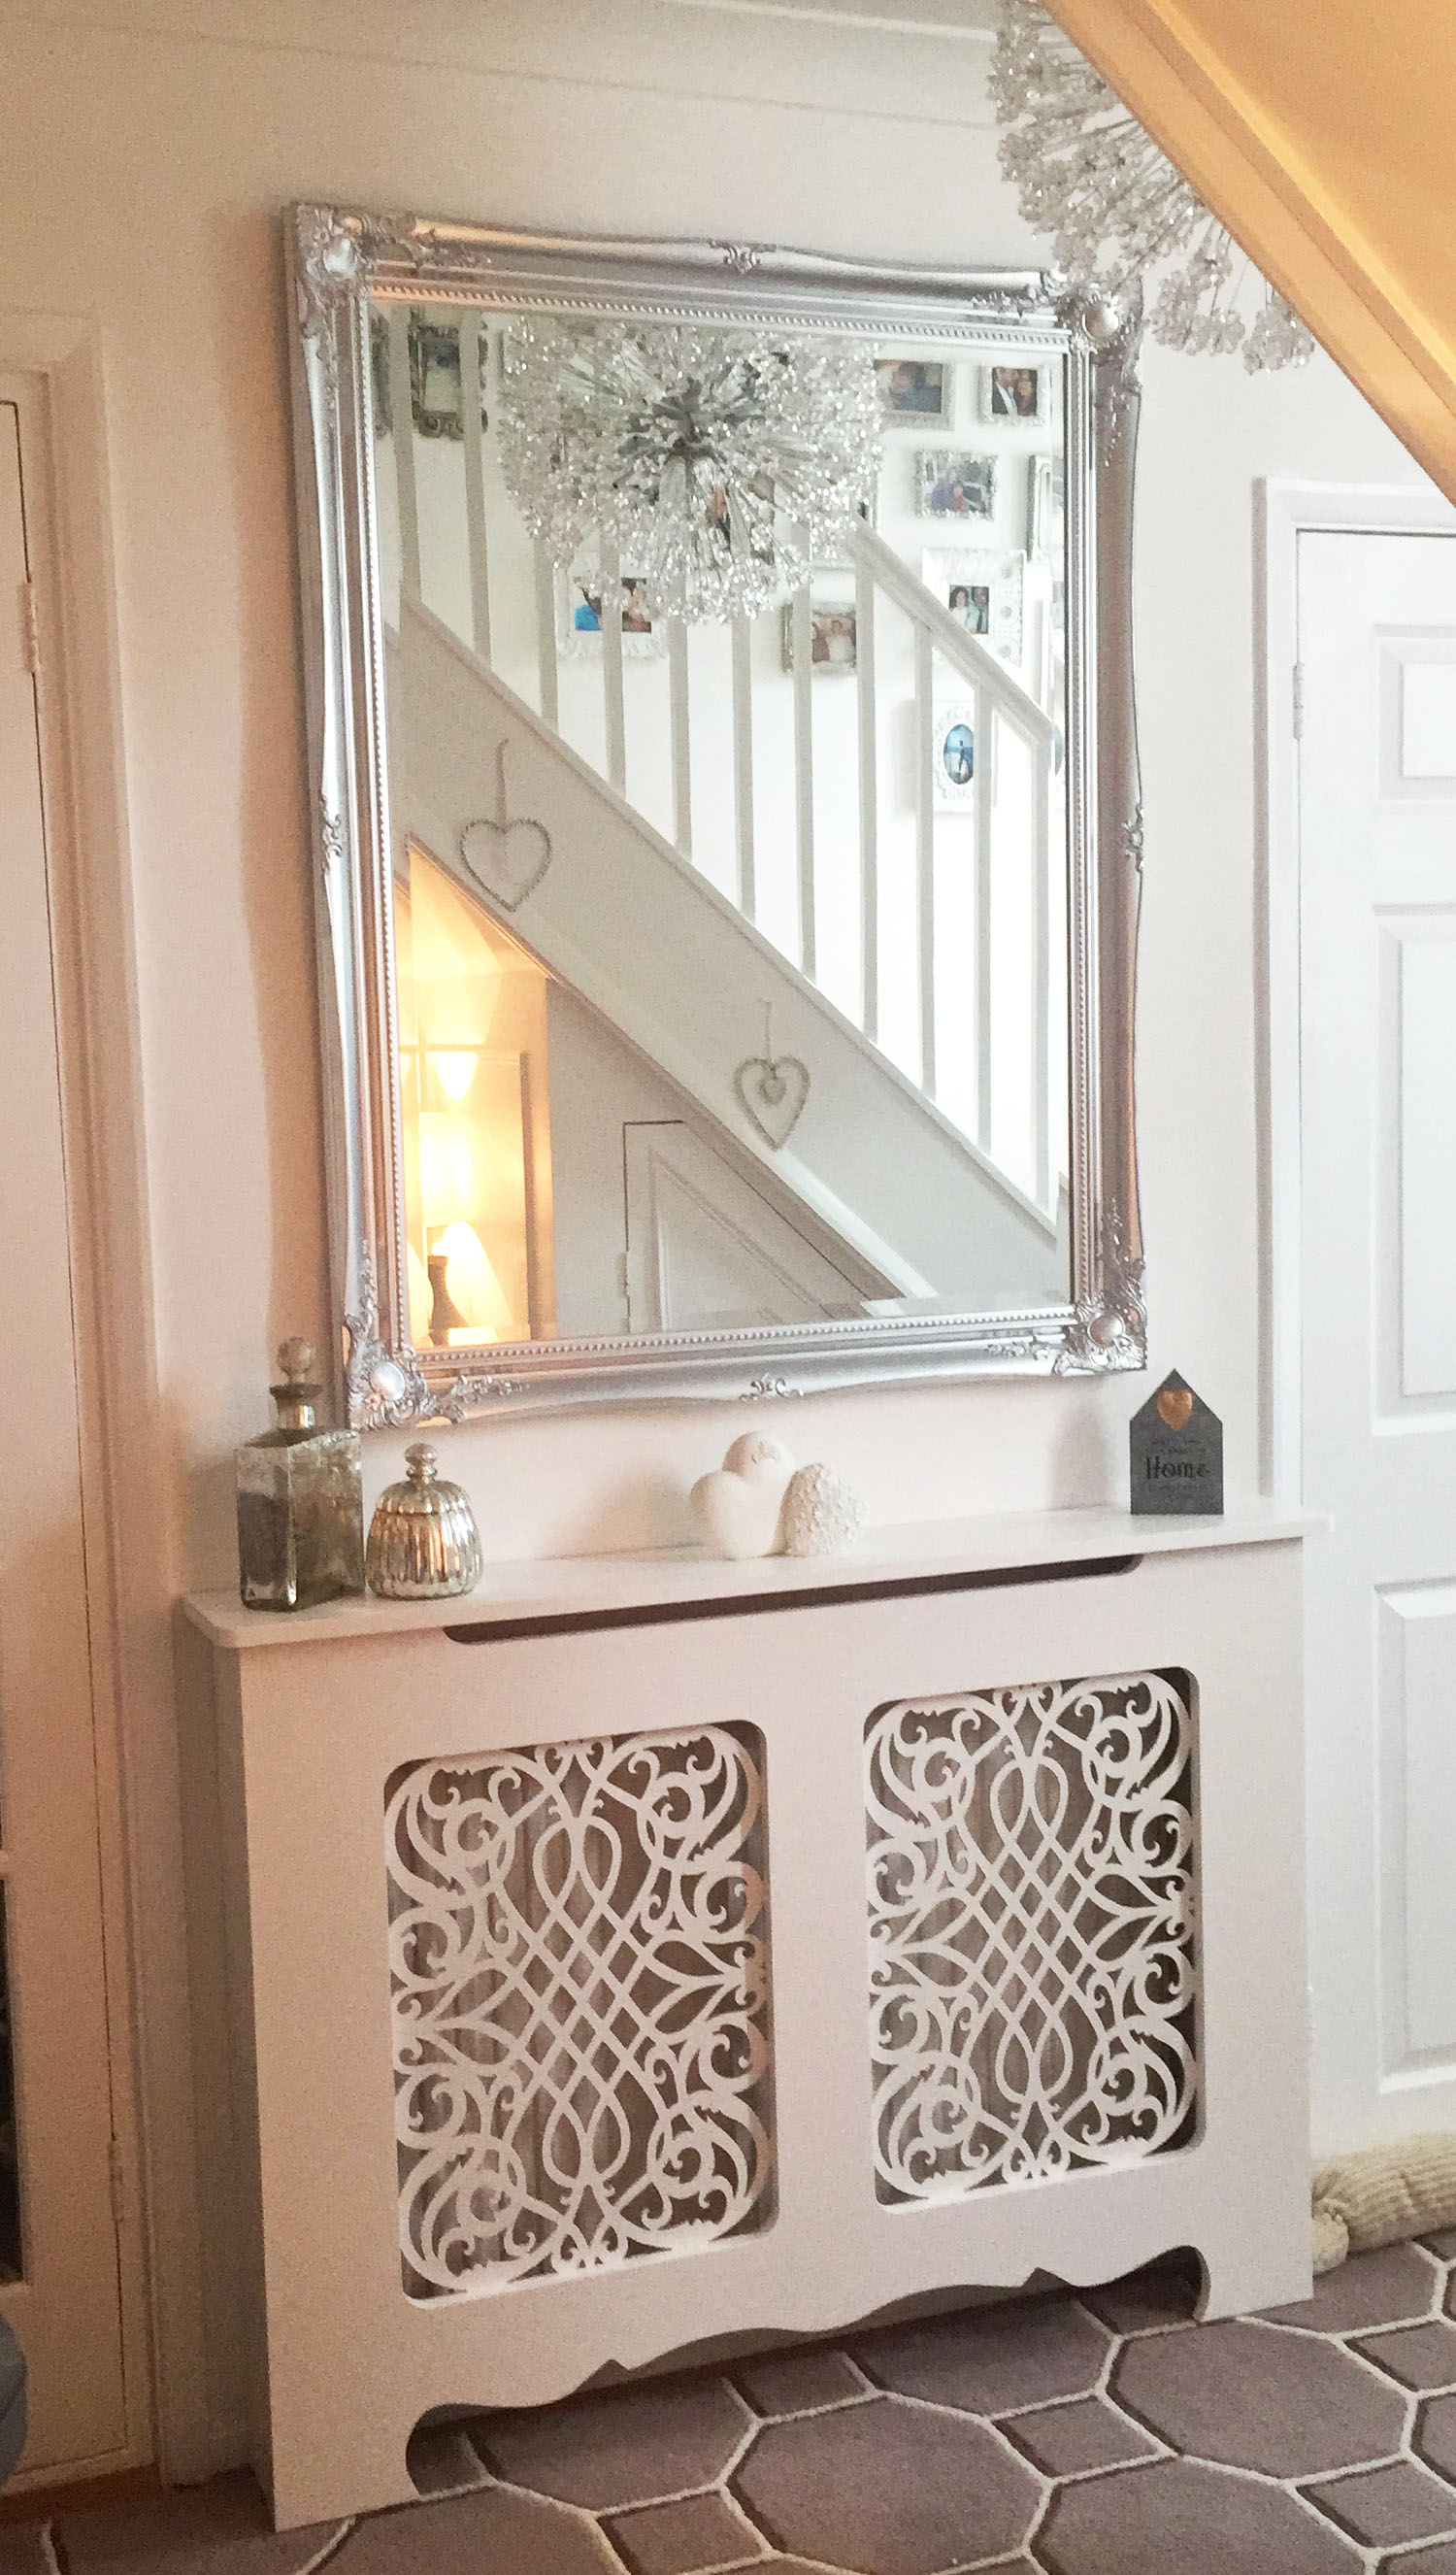 How Did Radiator Plants Become The Best: Custom Made Radiator Covers